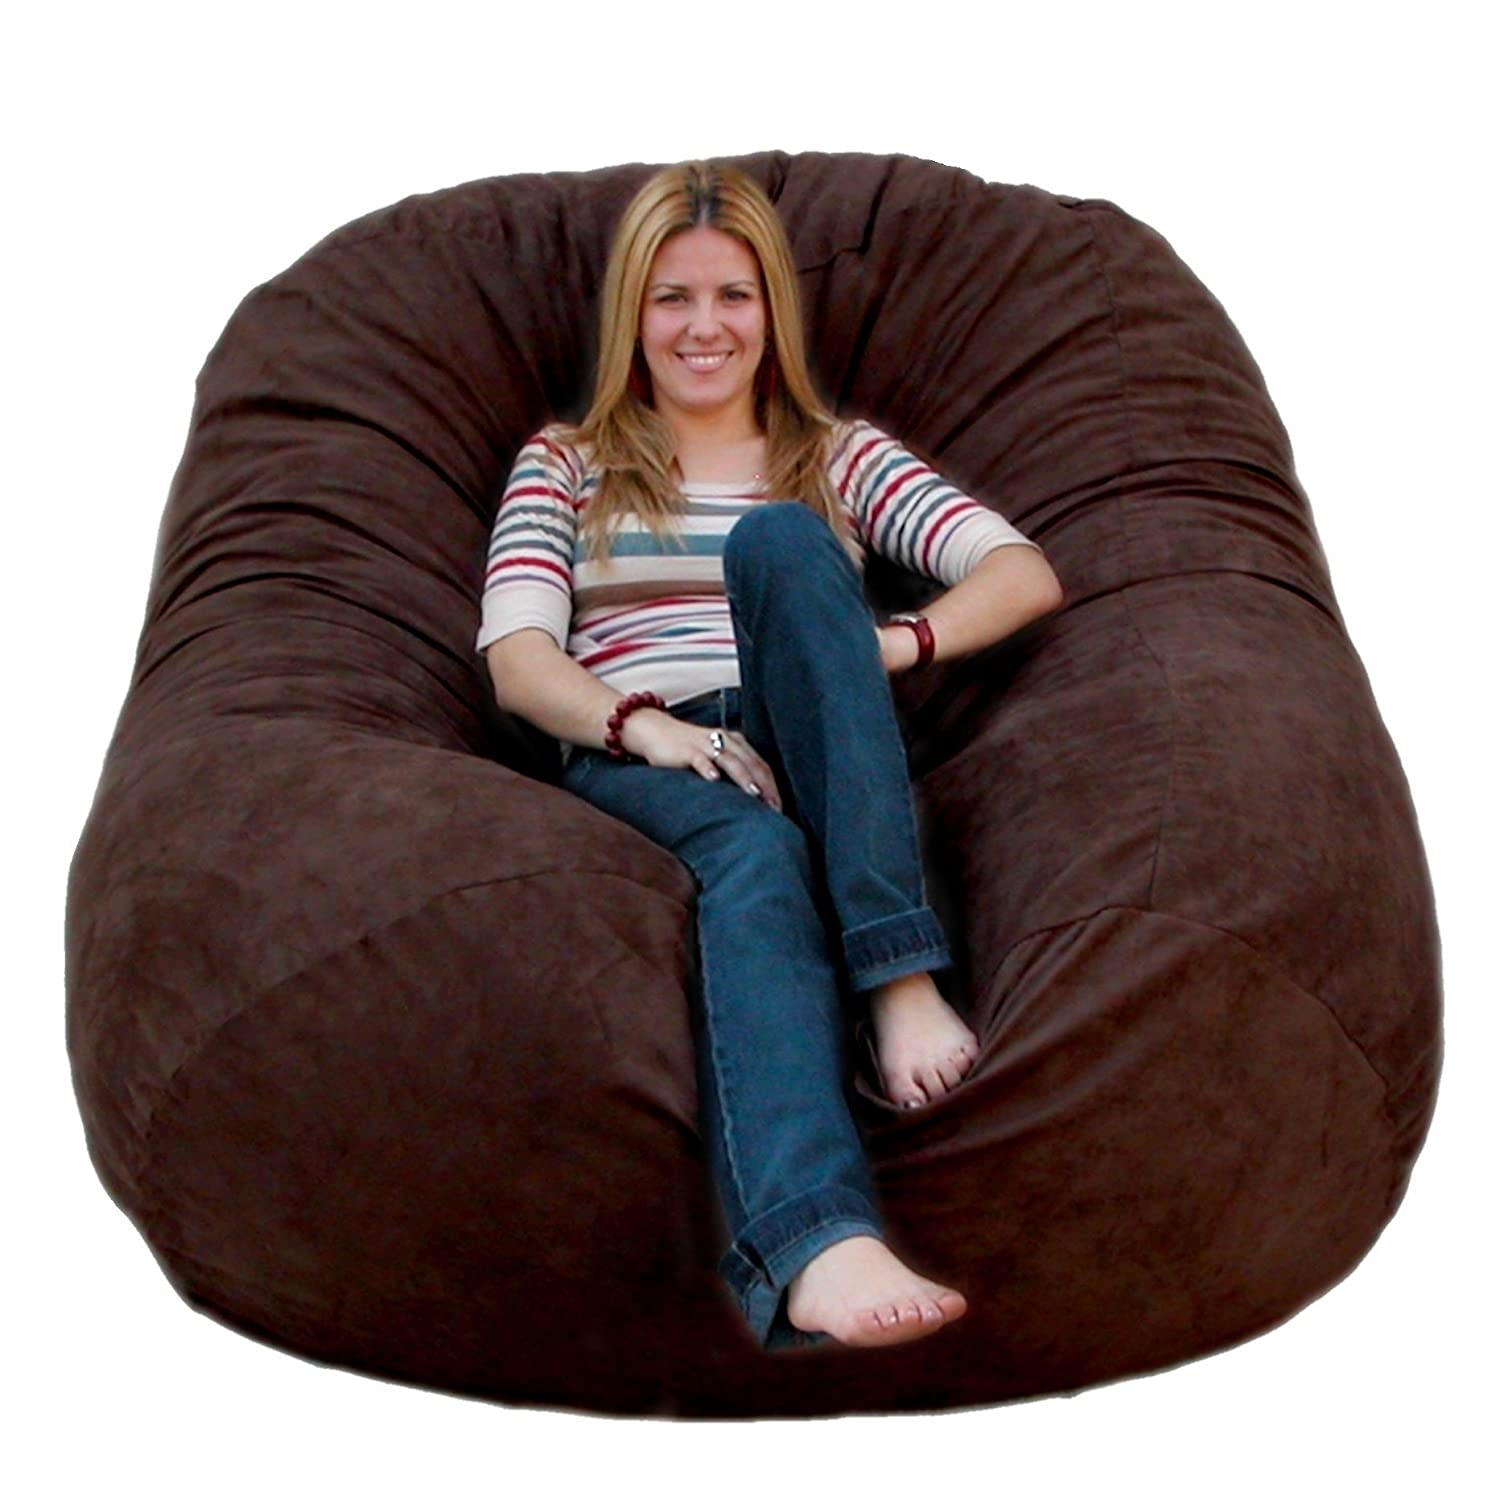 Amazon.com: Cozy Sack 6 Feet Bean Bag Chair, Large, Chocolate: Kitchen U0026  Dining